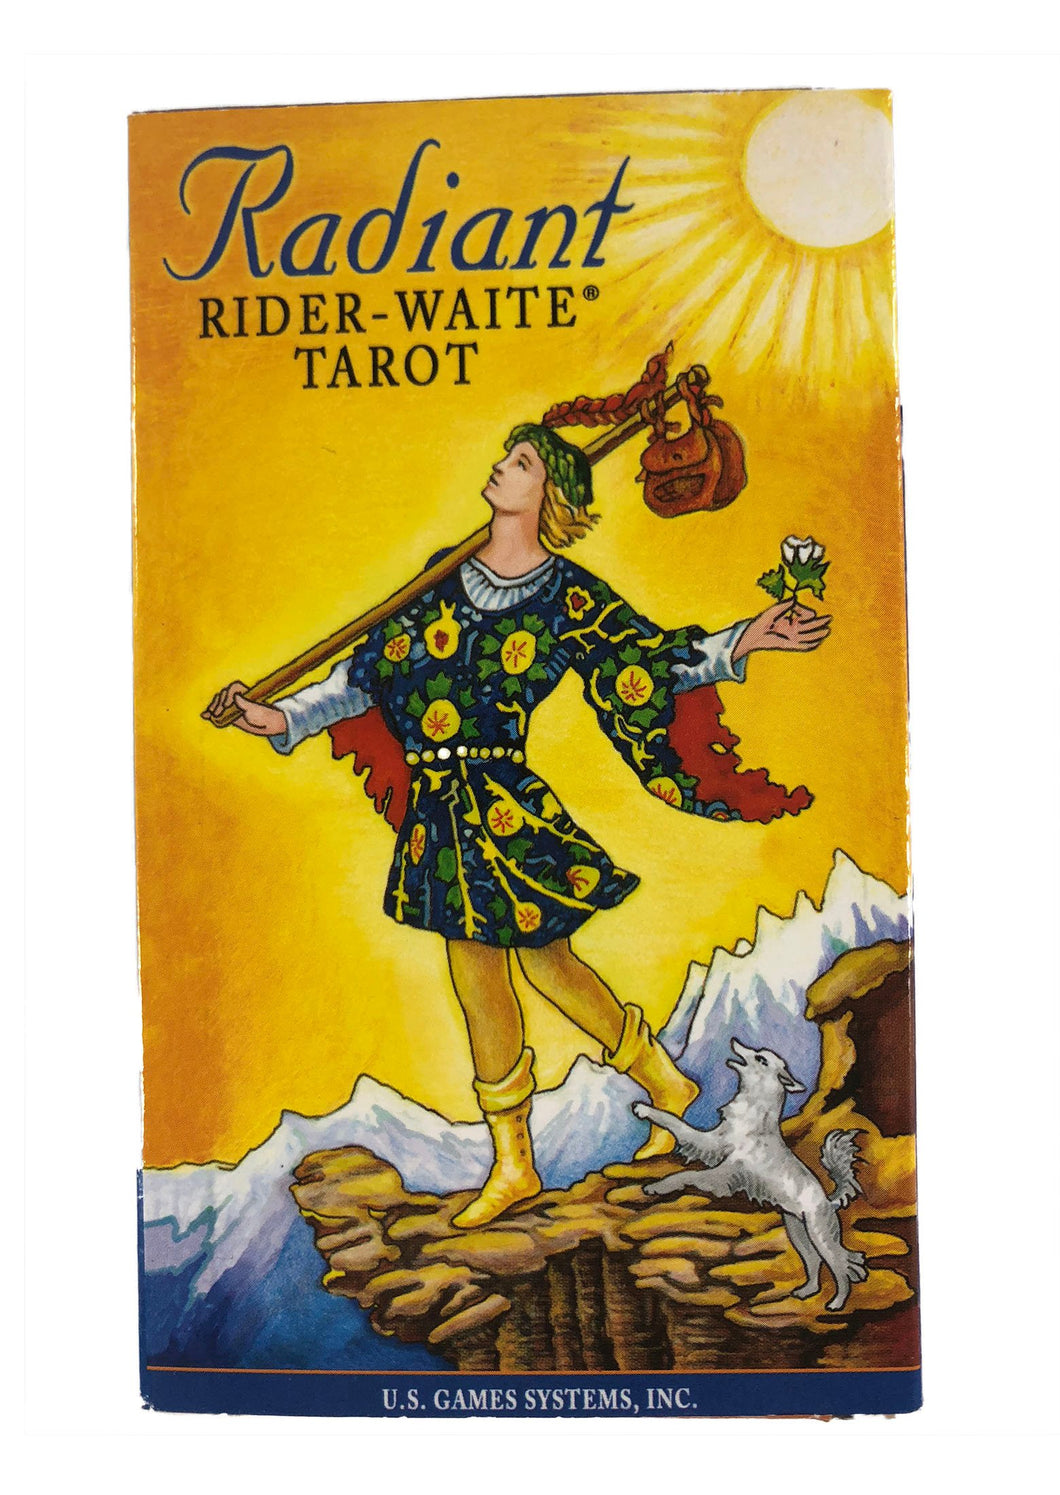 Radiant Rider-Waite Tarot- 78 cards